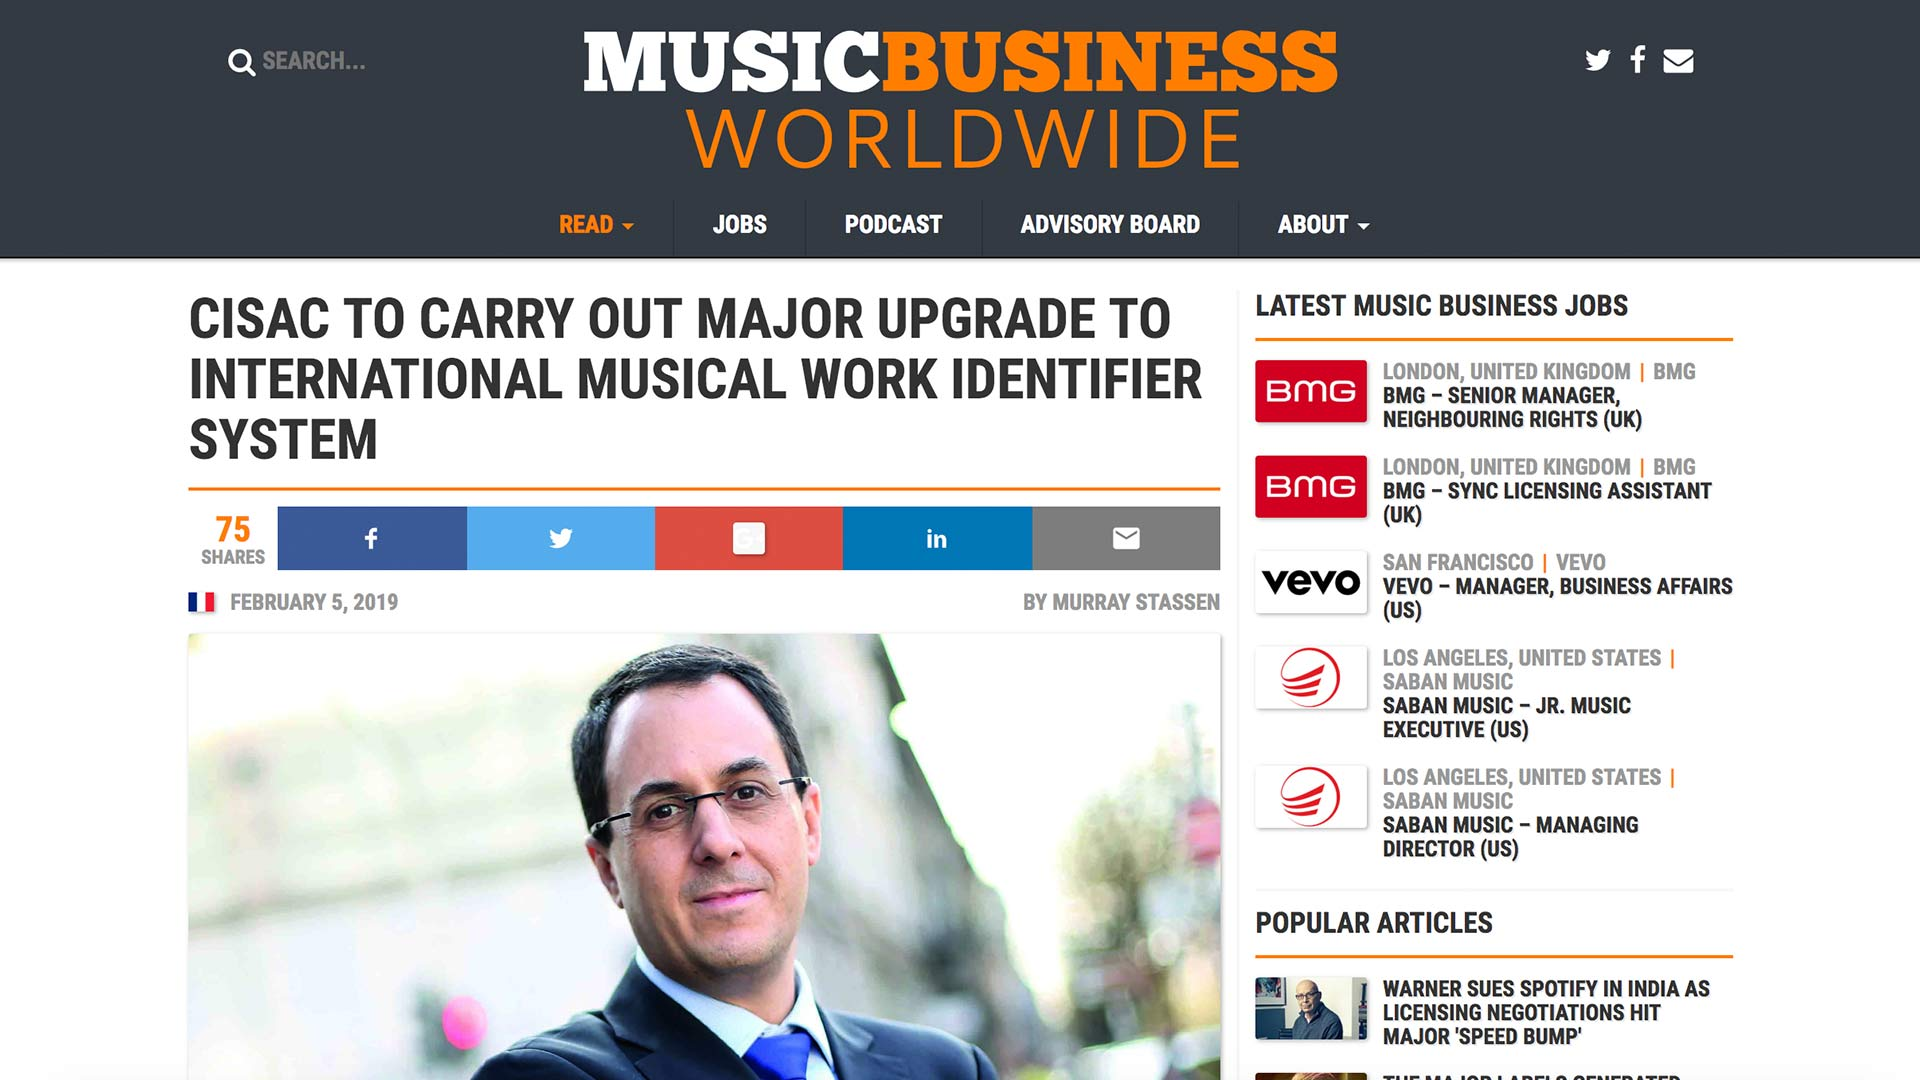 Fairness Rocks News CISAC TO CARRY OUT MAJOR UPGRADE TO INTERNATIONAL MUSICAL WORK IDENTIFIER SYSTEM